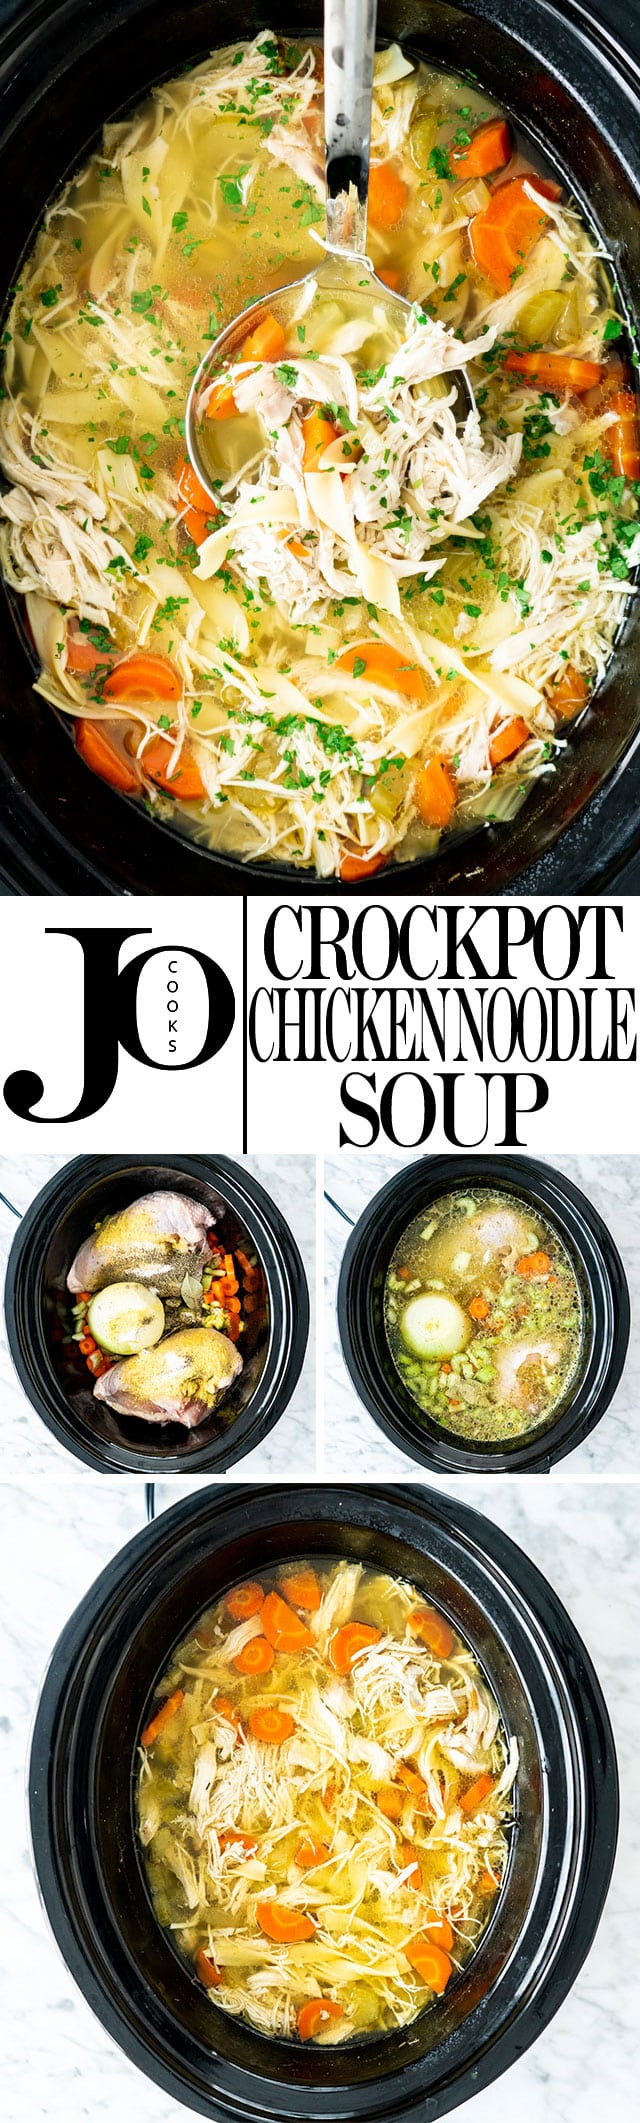 This crockpot chicken noodle soup is a classic and hearty soup, requiring minimal effort giving you tender chicken, loads of noodles and a delicious broth. #crockpotchickennoodlesoup #chickennoodlesoup